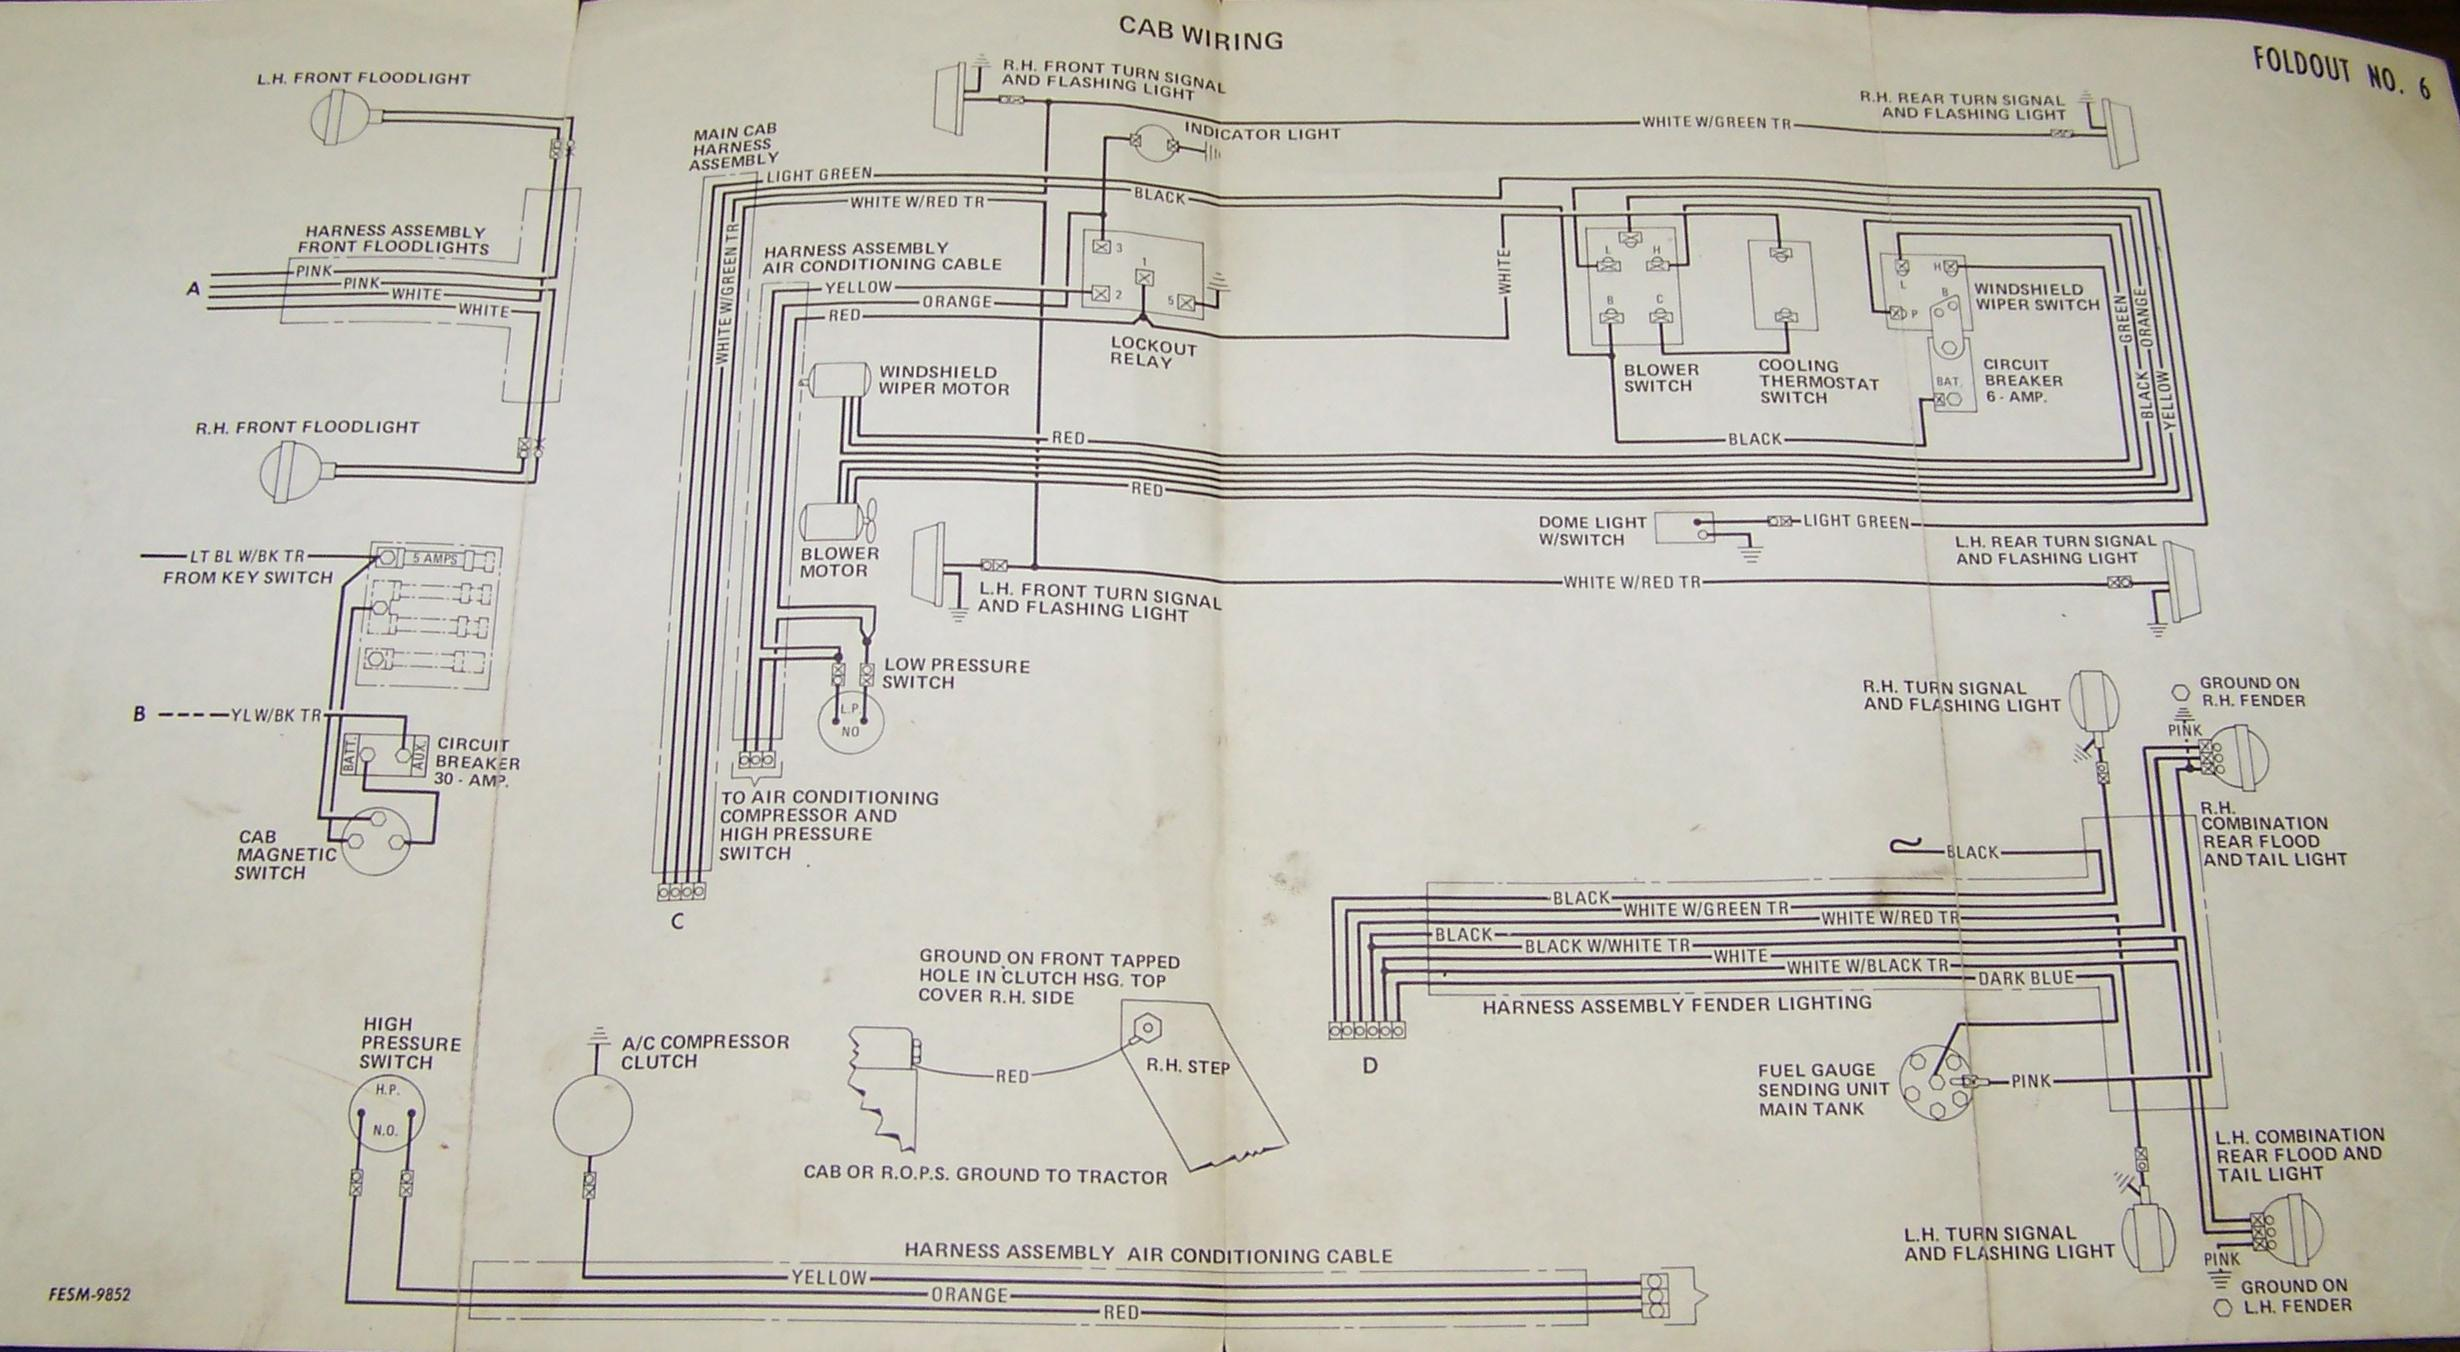 ih 3444 tractor wiring diagram 806 ih tractor wiring diagram 1486 electrical - general ih - red power magazine community